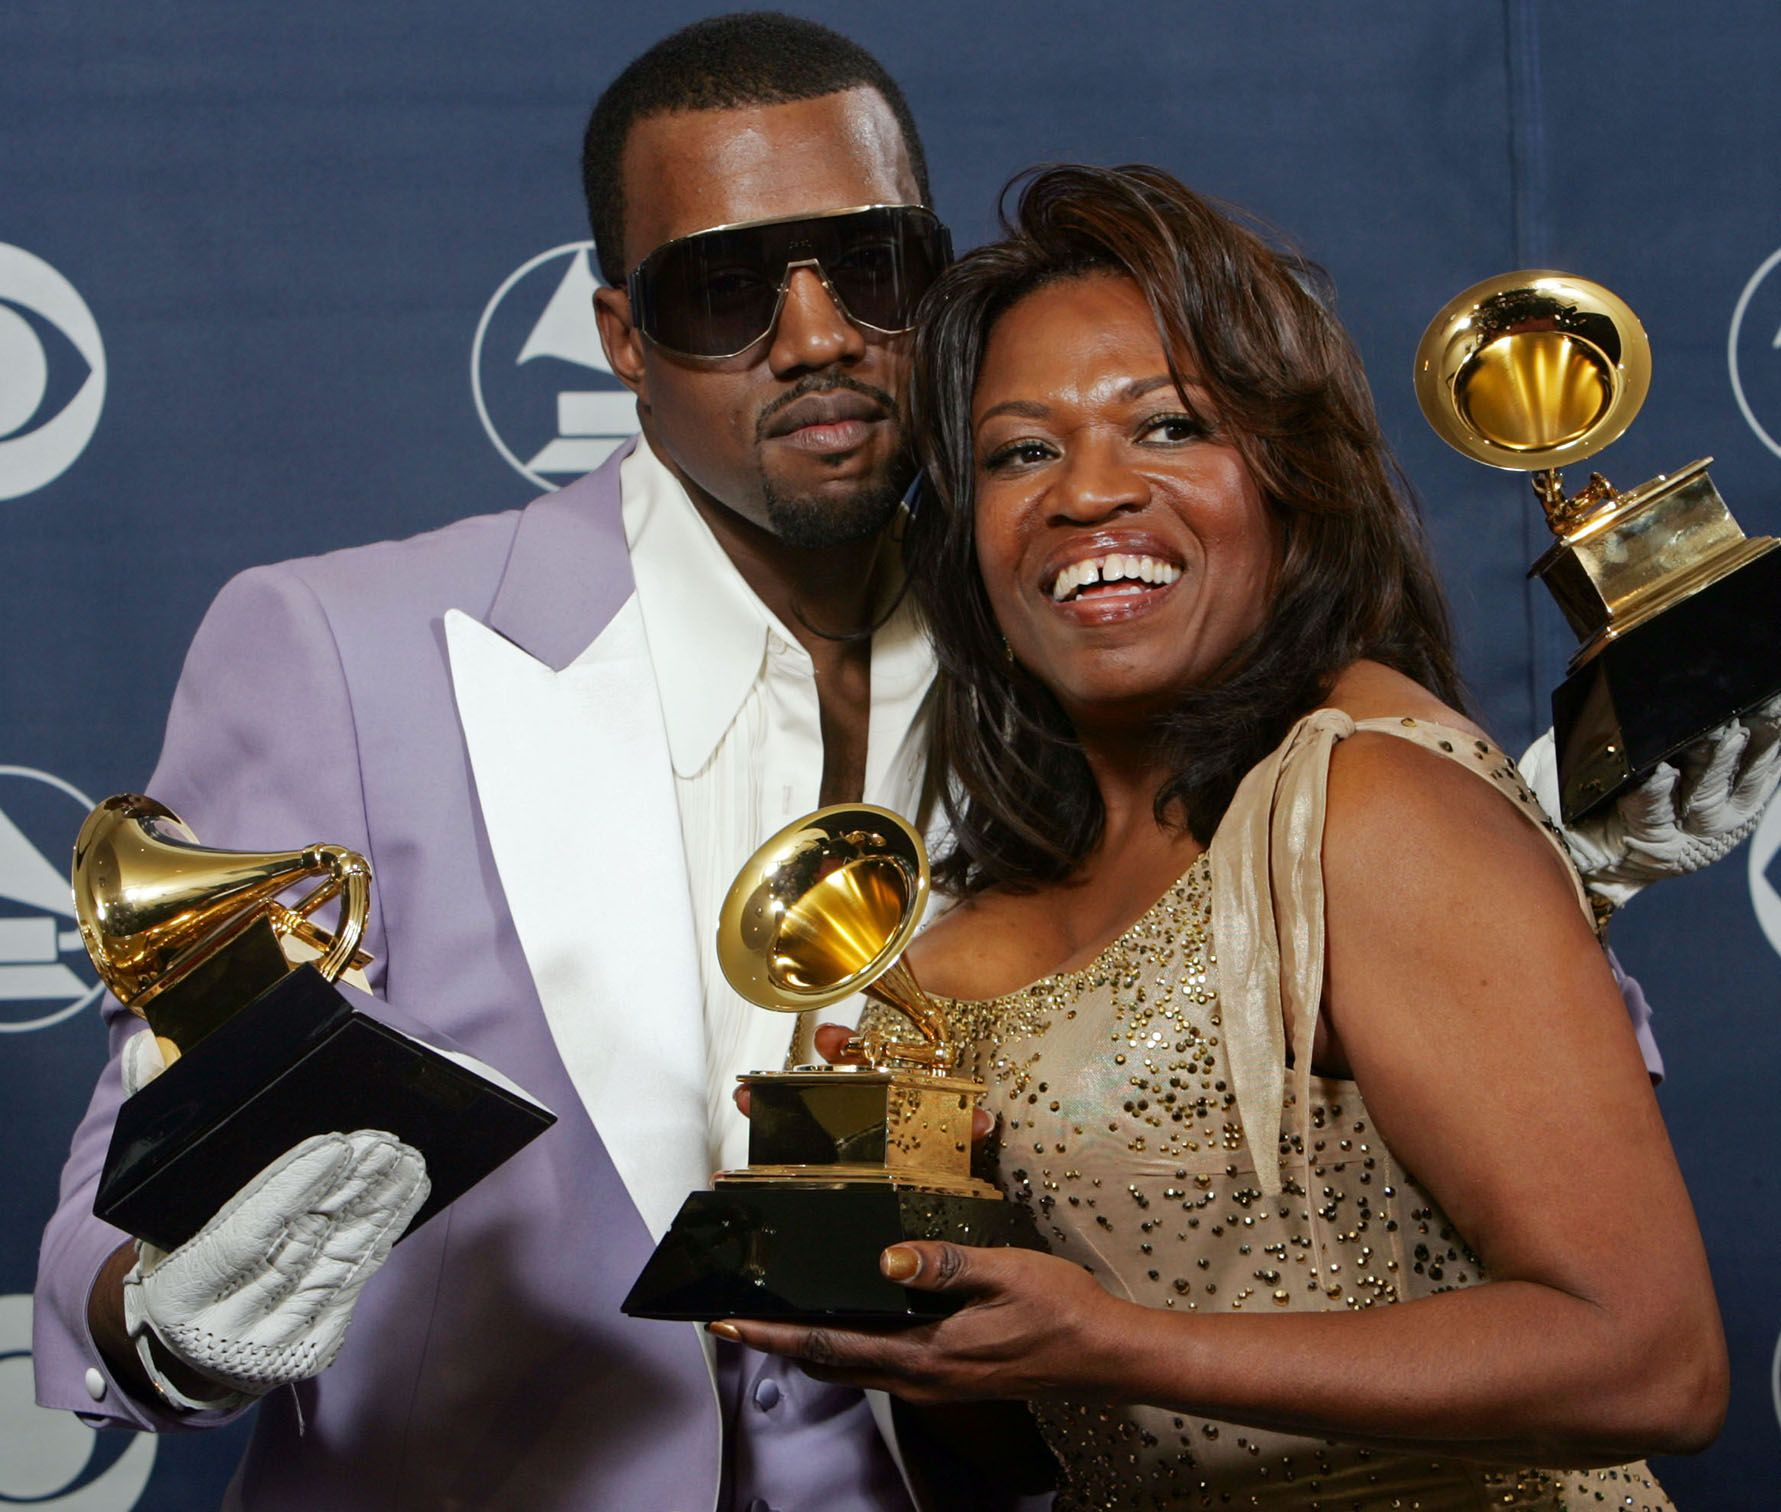 Why I Wrote 46 Poems About Kanye West With Images Celebrity Families Kanye West Mothers Death